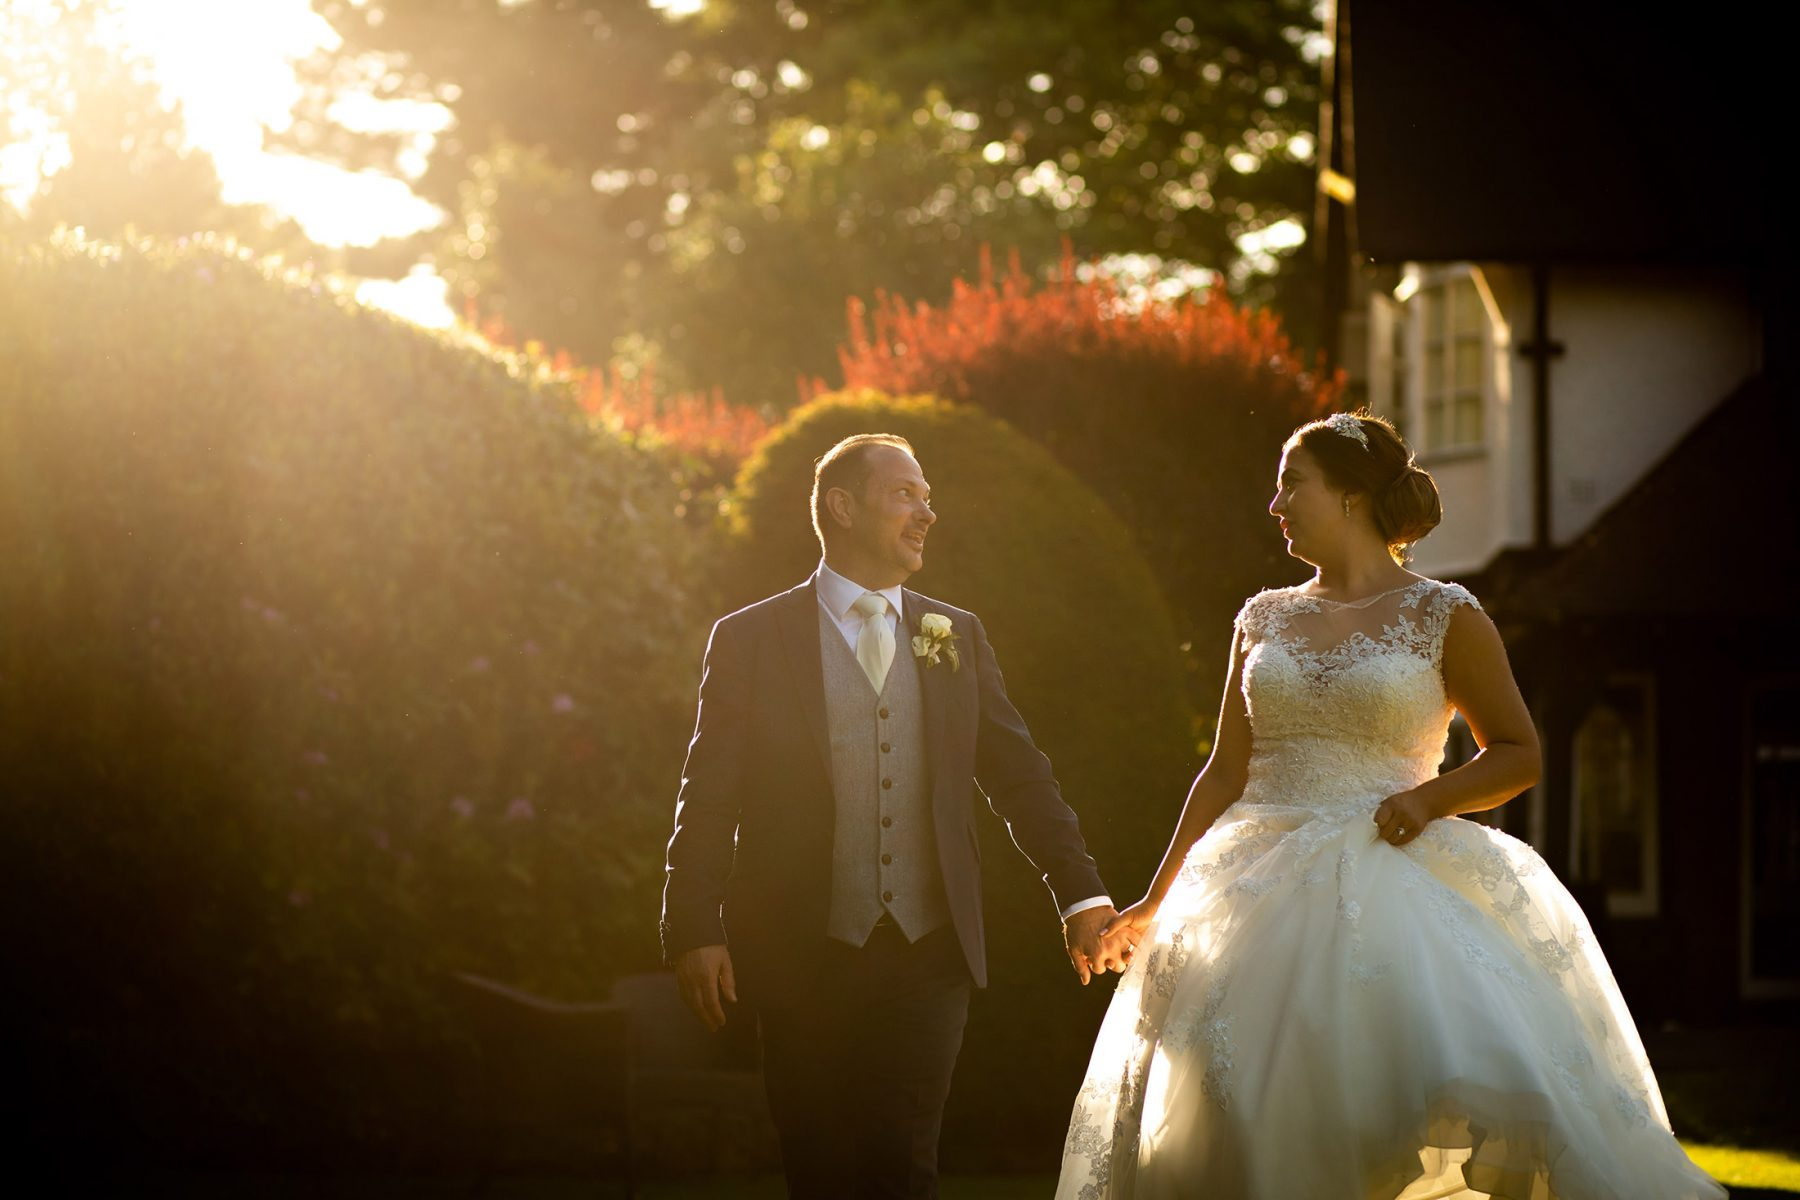 The bride and groom laugh in evening sunlight